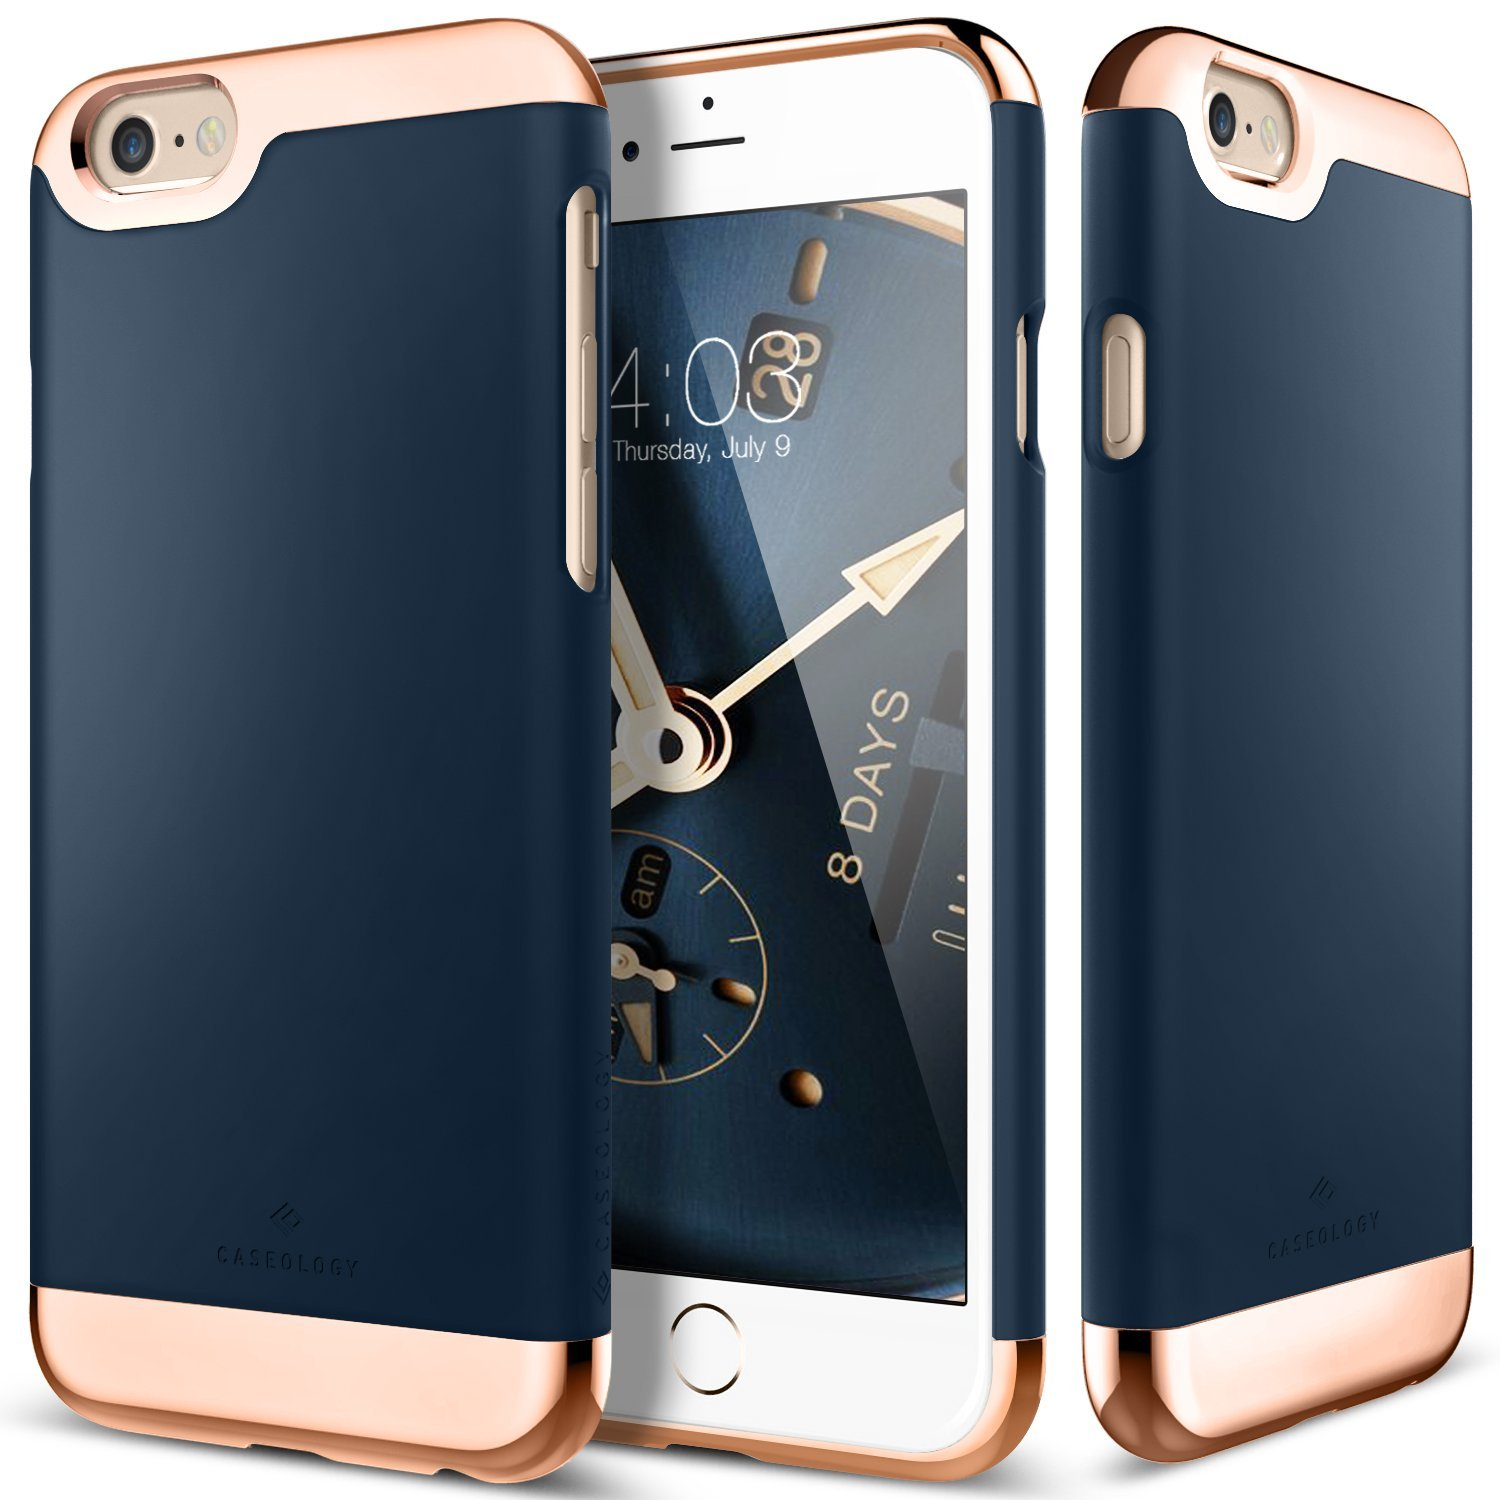 Apple iPhone 6/6S Case, Caseology [Savoy Series] Chrome / Microfiber Slider Case [Navy Blue] [Premium Rose Gold]